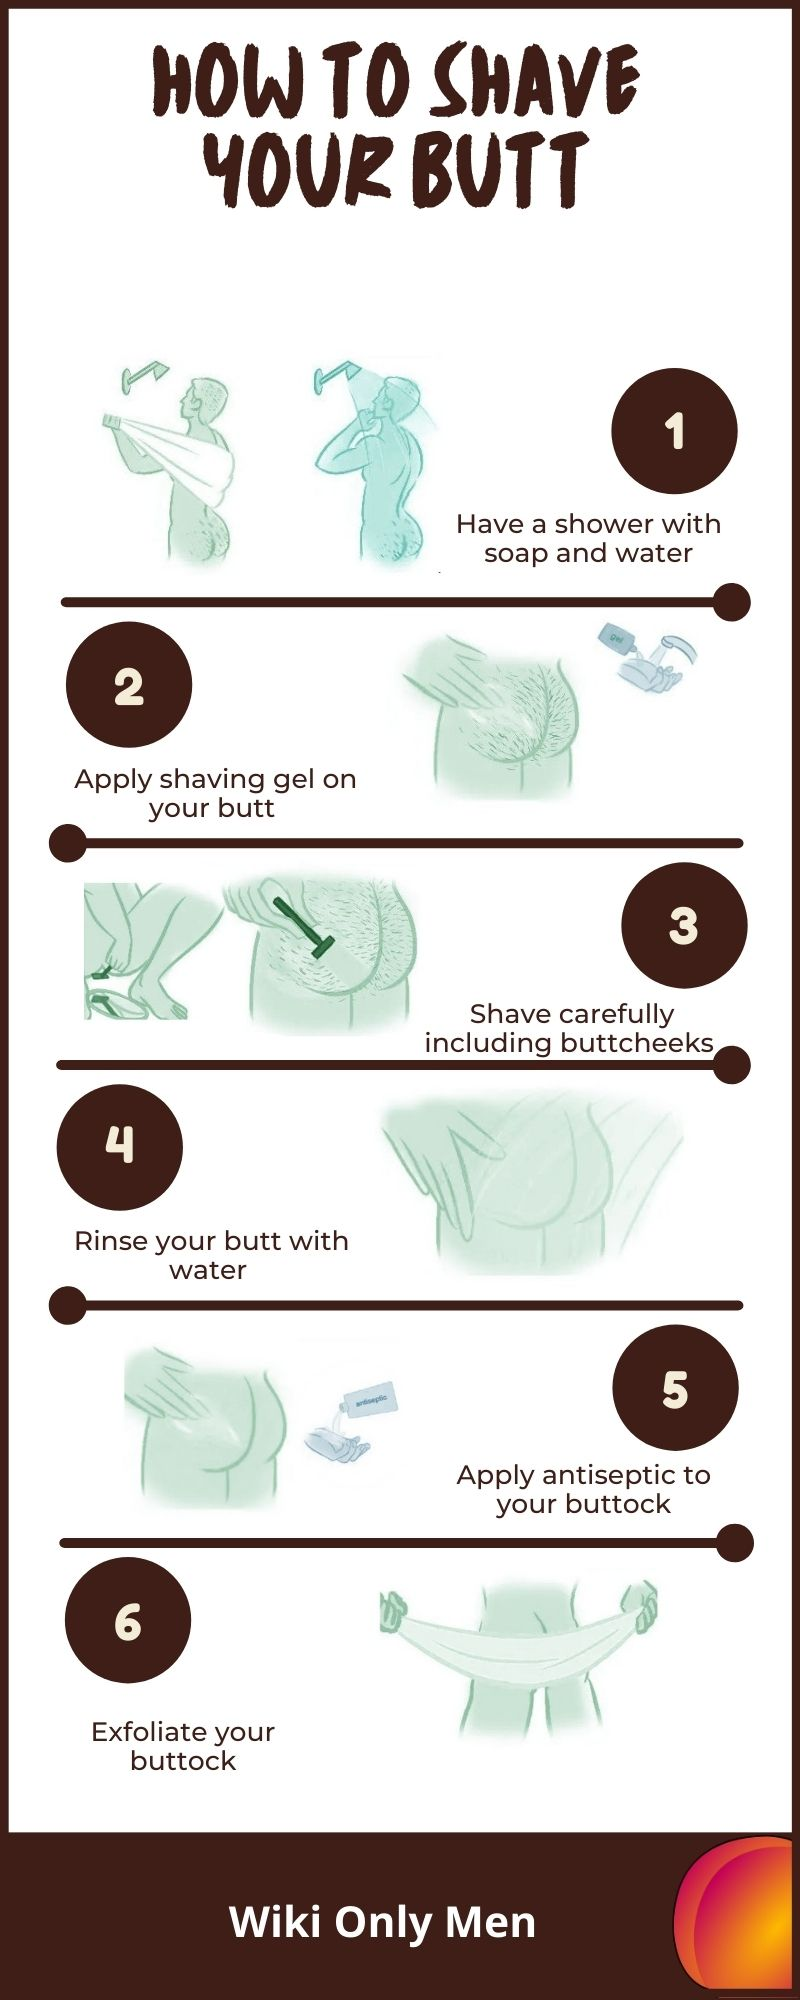 How to Shave Your Butt (Males)